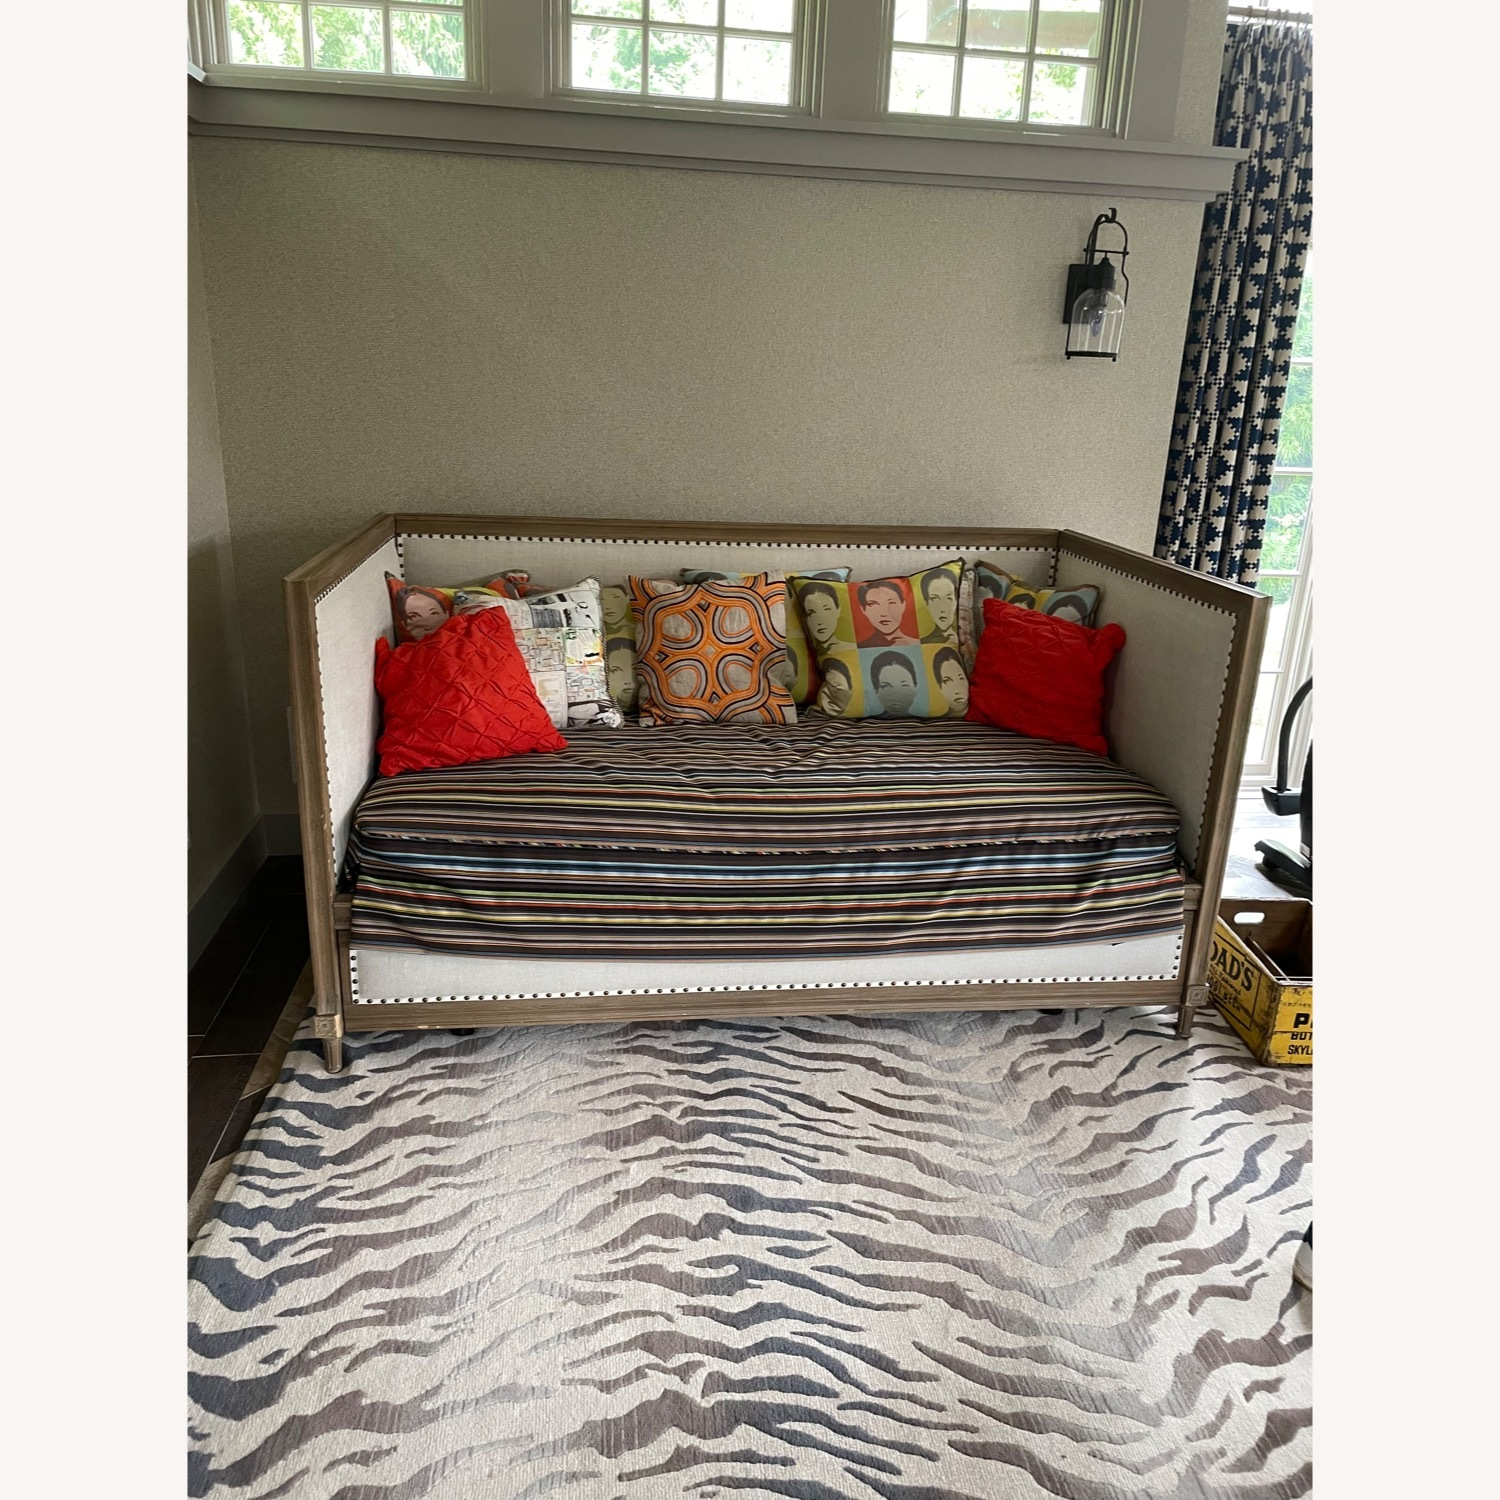 Restoration Hardware Maison Daybed with Paul Smith Cover - image-0